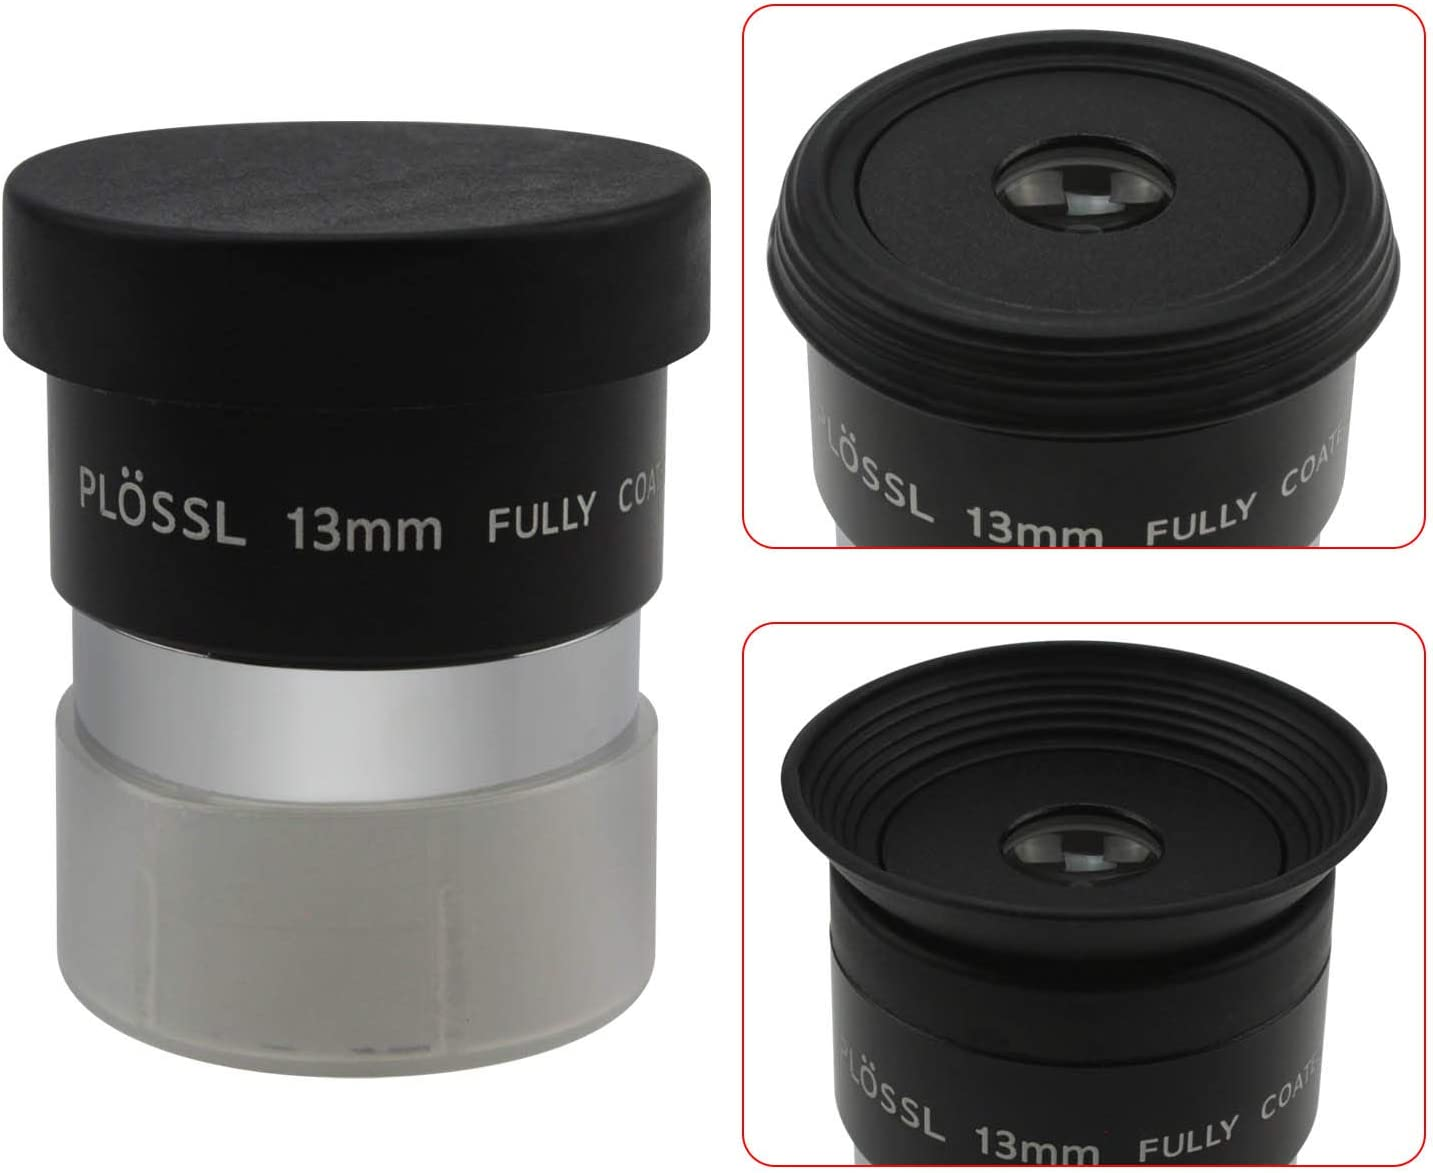 4-Element Plossl Design Astromania 1.25 12.5mm Plossl Telescope Eyepiece Threaded for Standard 1.25inch Astronomy Filters